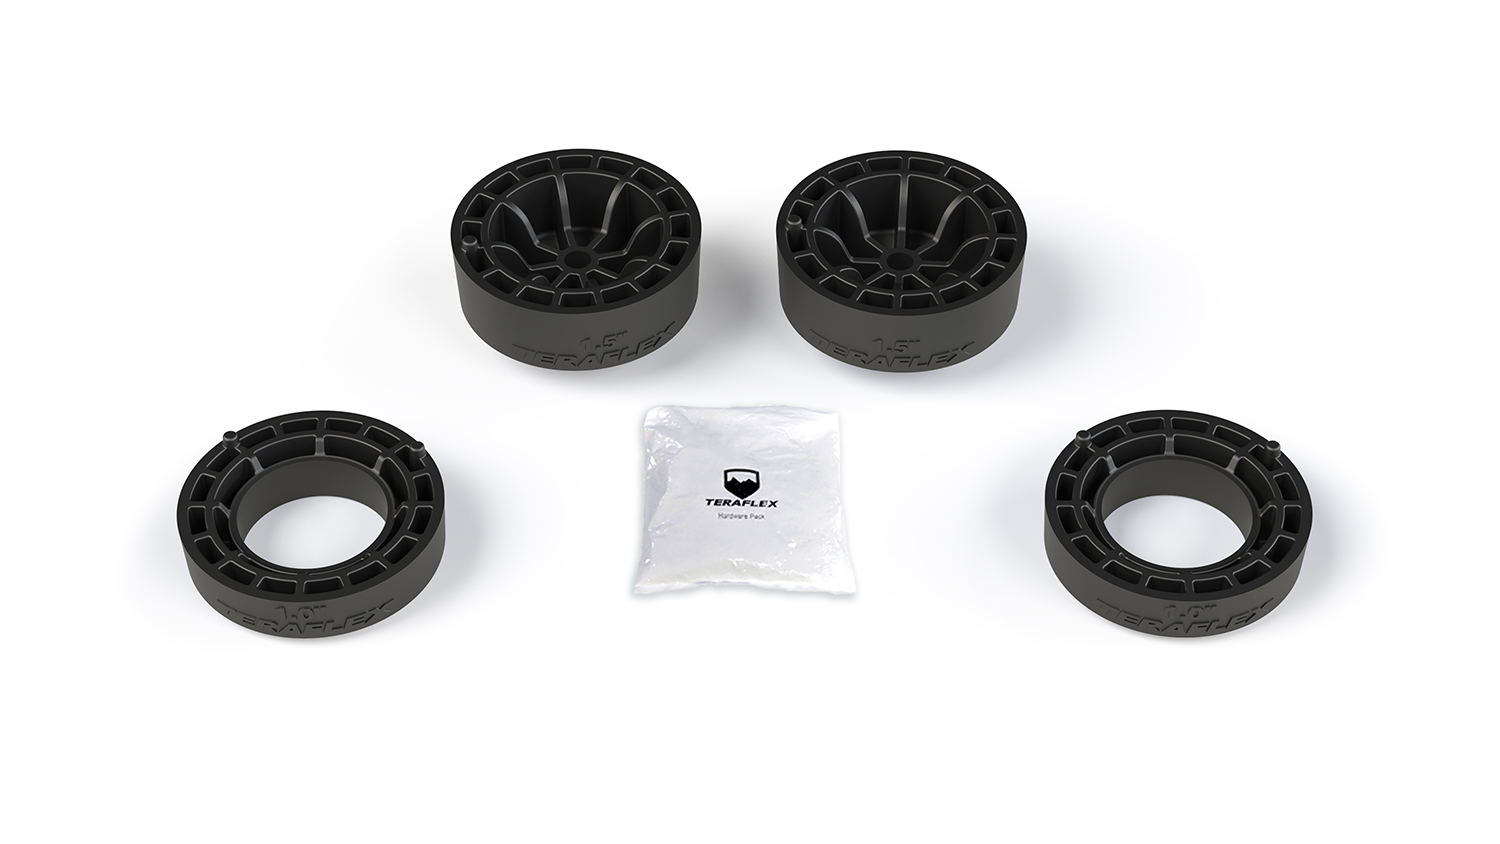 Teraflex 1.5in Performance Spacer Lift Kit - JL 2Dr